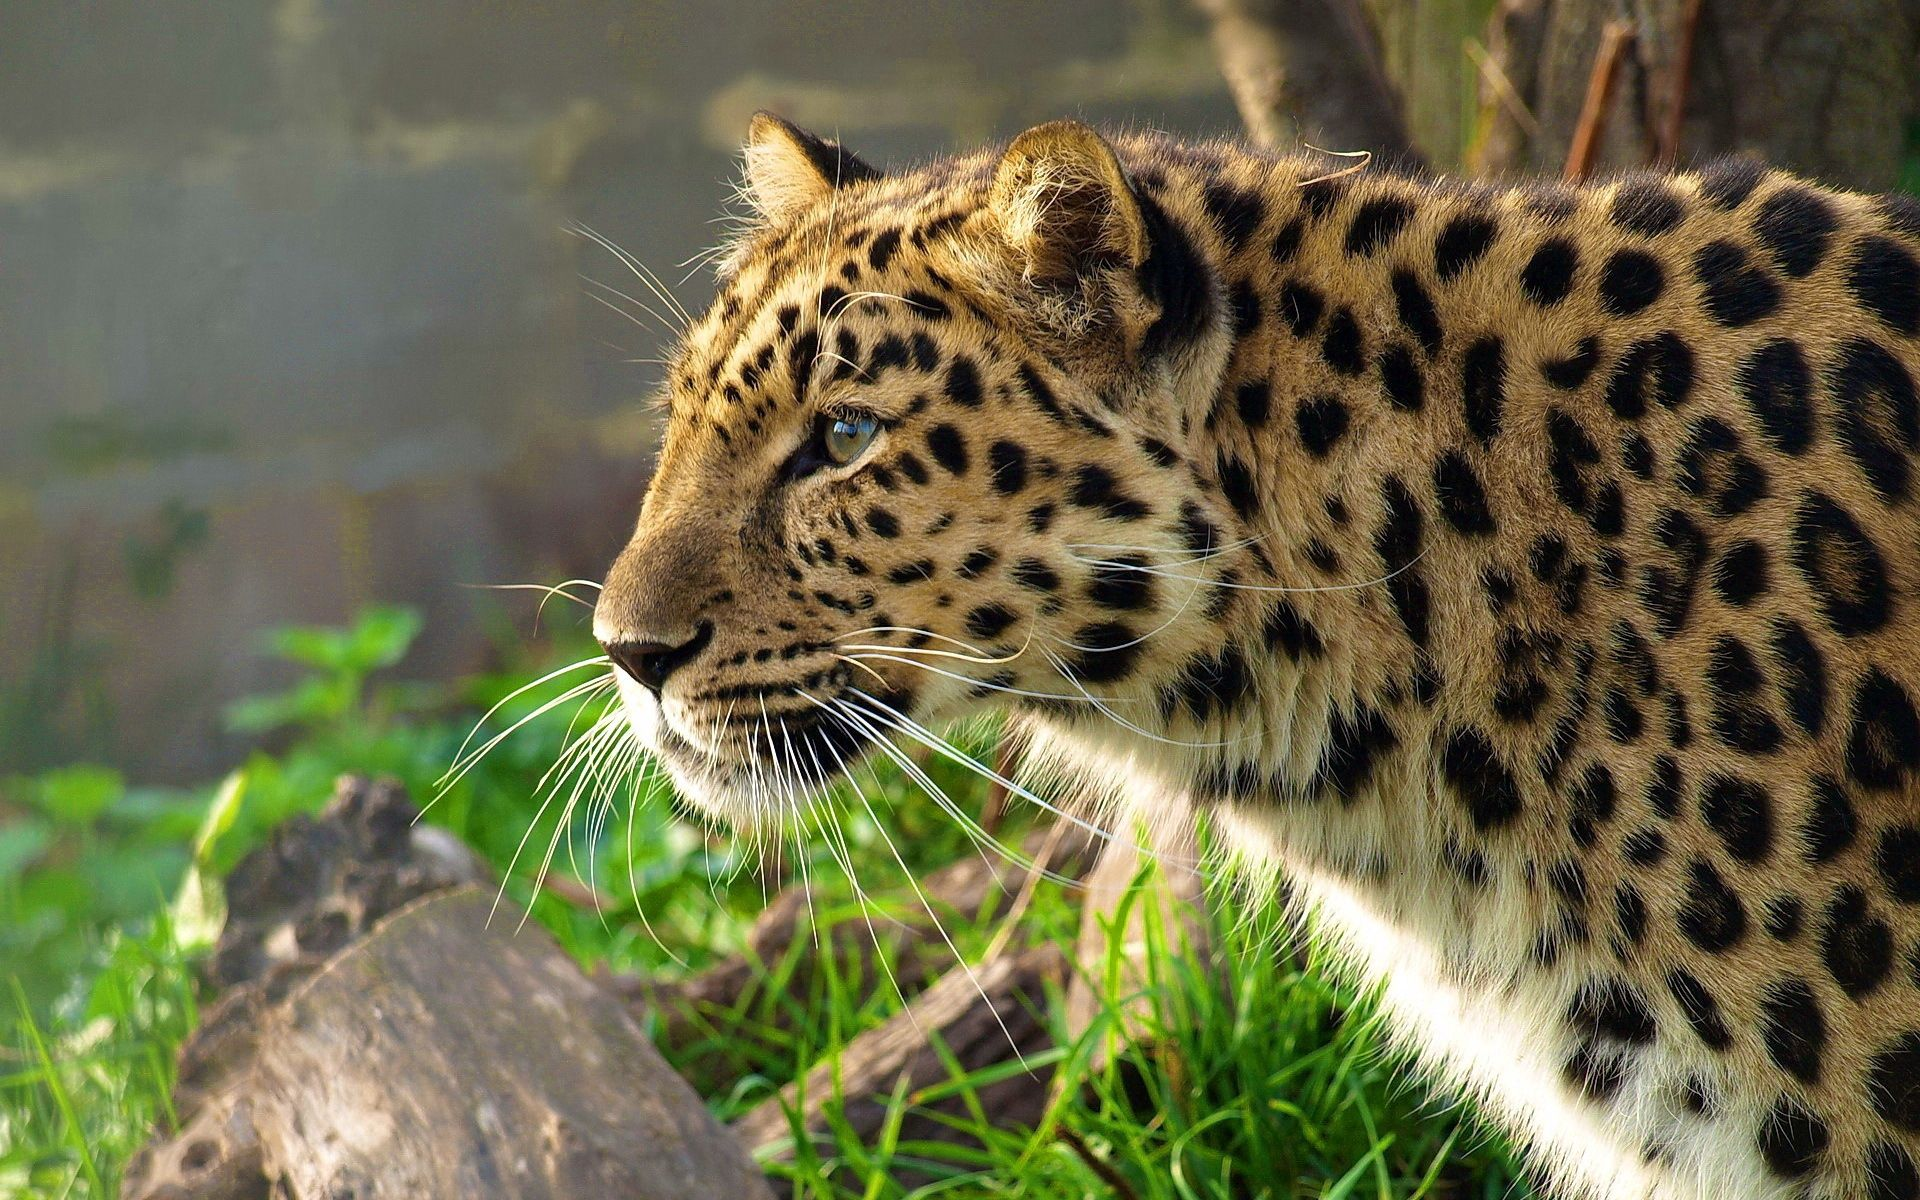 102756 download wallpaper Animals, Leopard, Big Cat, Spotted, Spotty, Profile, Hunting, Hunt screensavers and pictures for free